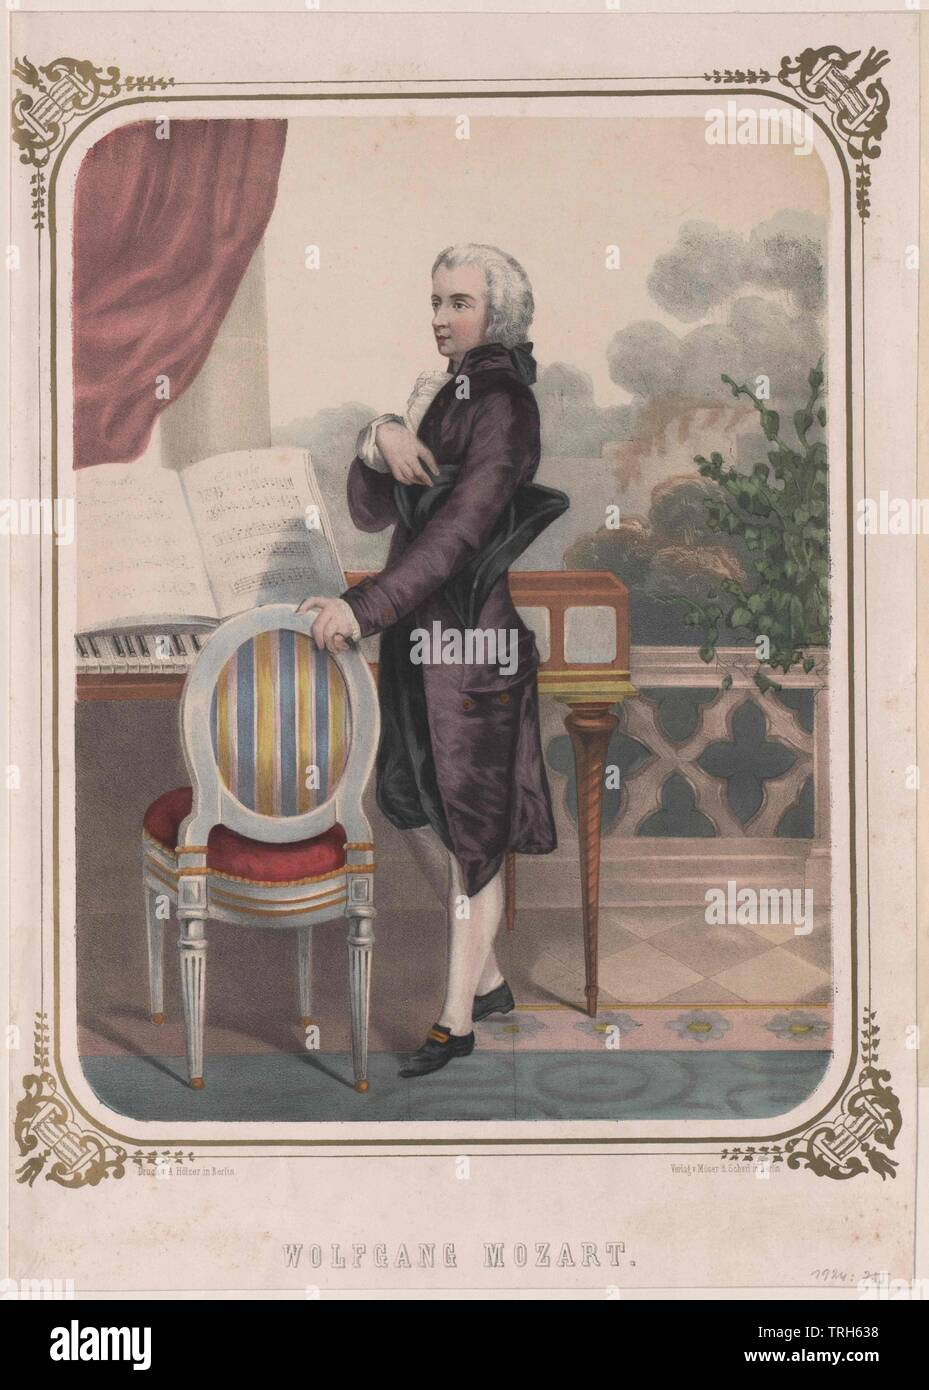 Mozart, Wolfgang Amadeus, full-length well-nigh left profile, in front of spinet standing. drawing by Edouard Hamman. background version to Pg 450: I (36), colour printing A. Hoelzer-Berlin,composer, composers, culture, cultures, artist, artists, musicians, personality, celebrities, musician, further, other, Viennese classicism, people, full-length, full length, 19th century, man, men, male, manly, whole, entirety, the whole thing, the whole issue, character, characters, spinet, spinets, colour printing, colour print, chromatic printing, Holzer-B, Additional-Rights-Clearance-Info-Not-Available - Stock Image